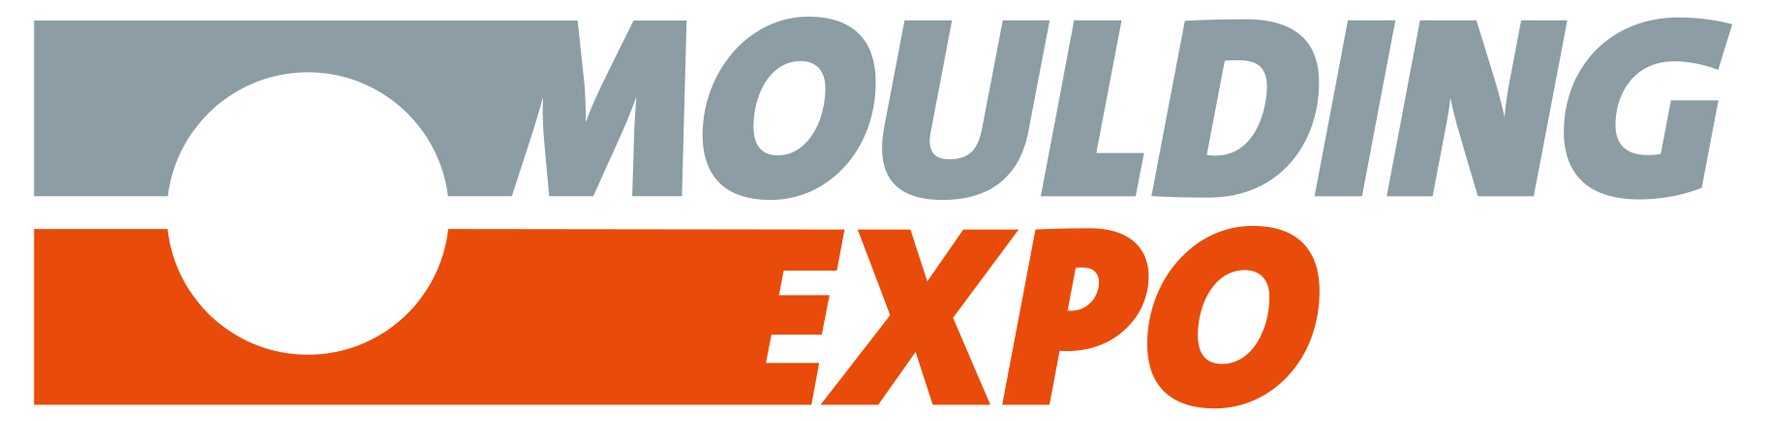 Thermoplay events - Moulding Expo